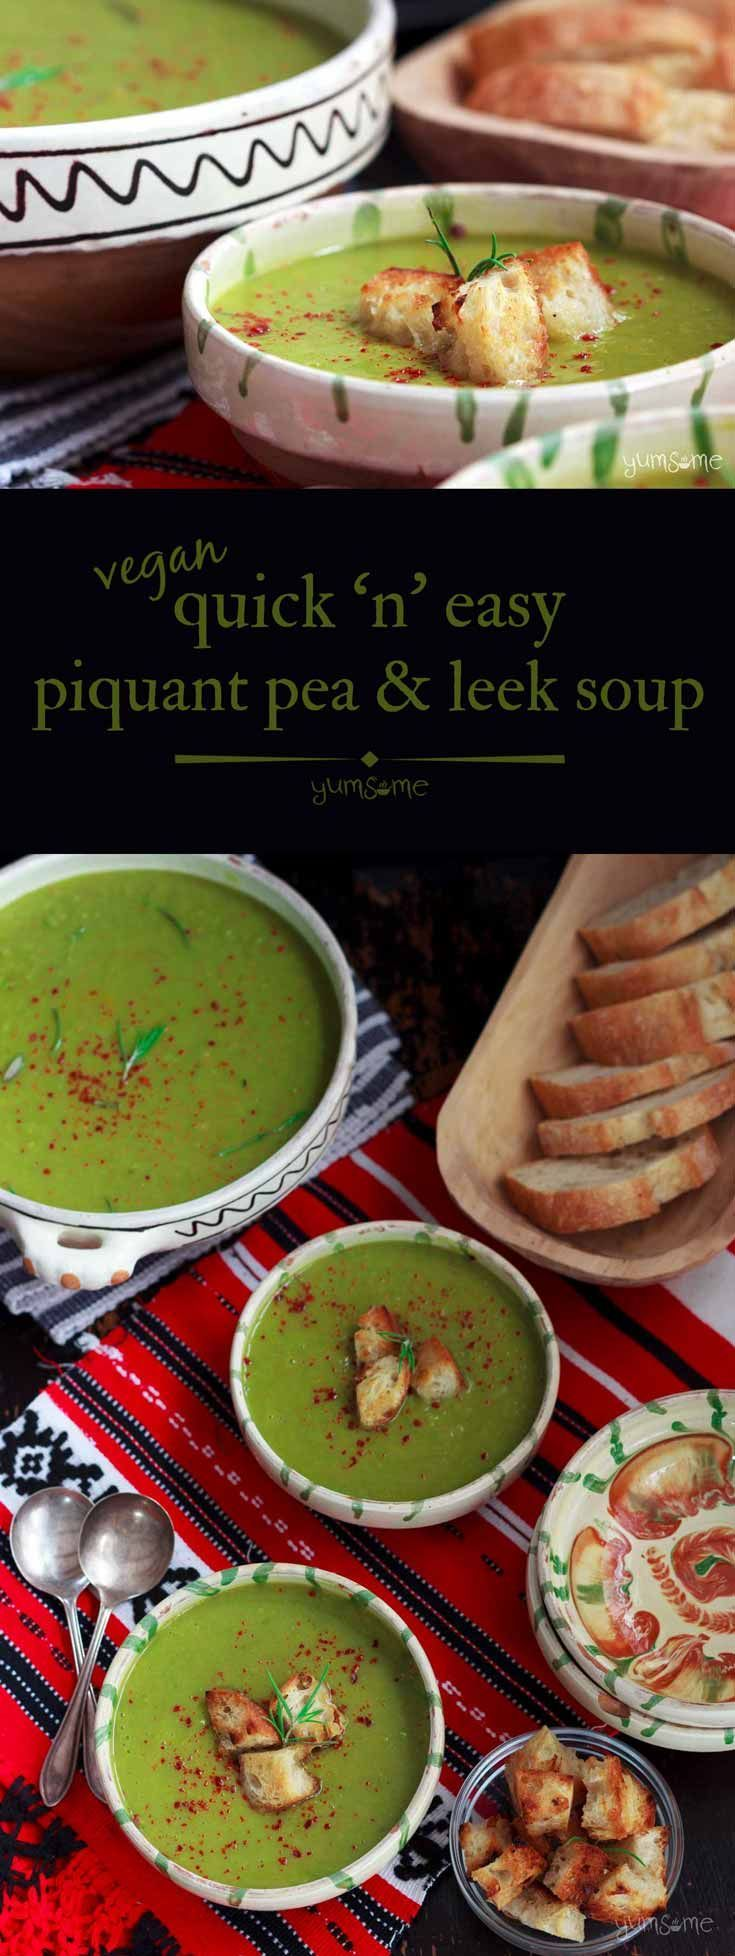 This quick n easy piquant pea & leek soup is made with just five ingredients, requires no fancy techniques, and is as delicious as it is beautiful to look at! | yumsome.com via @yums0me